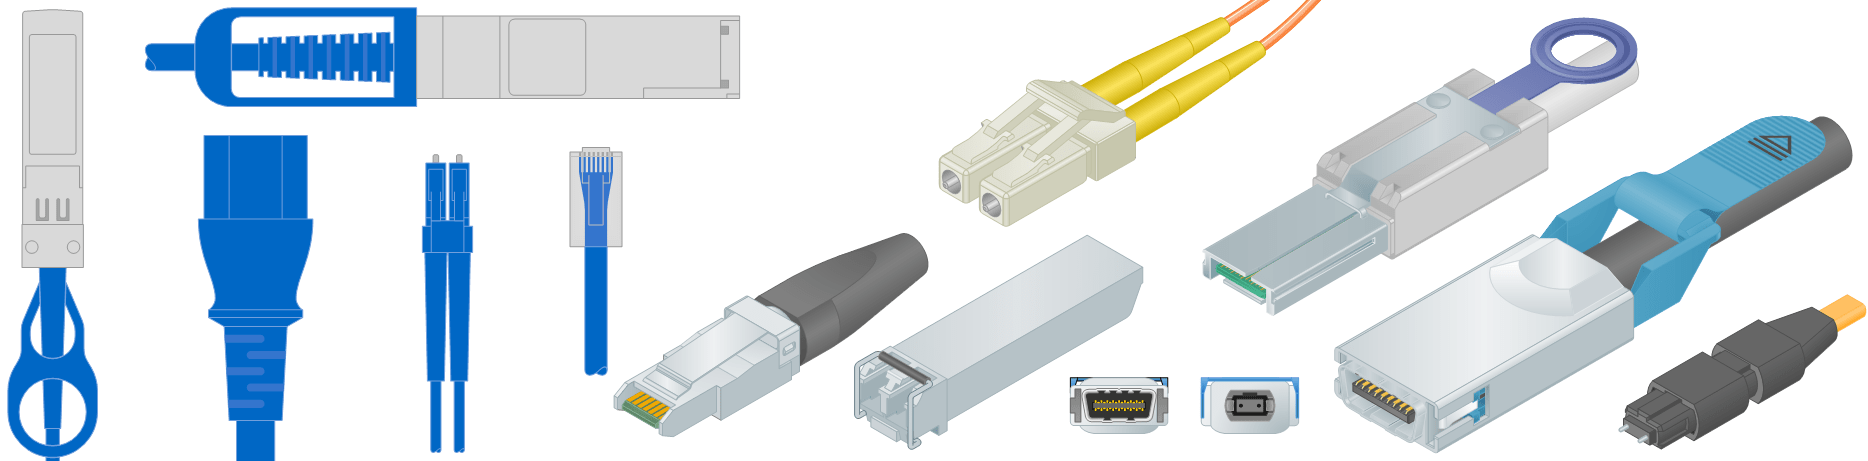 hight resolution of visio for network cabling diagram